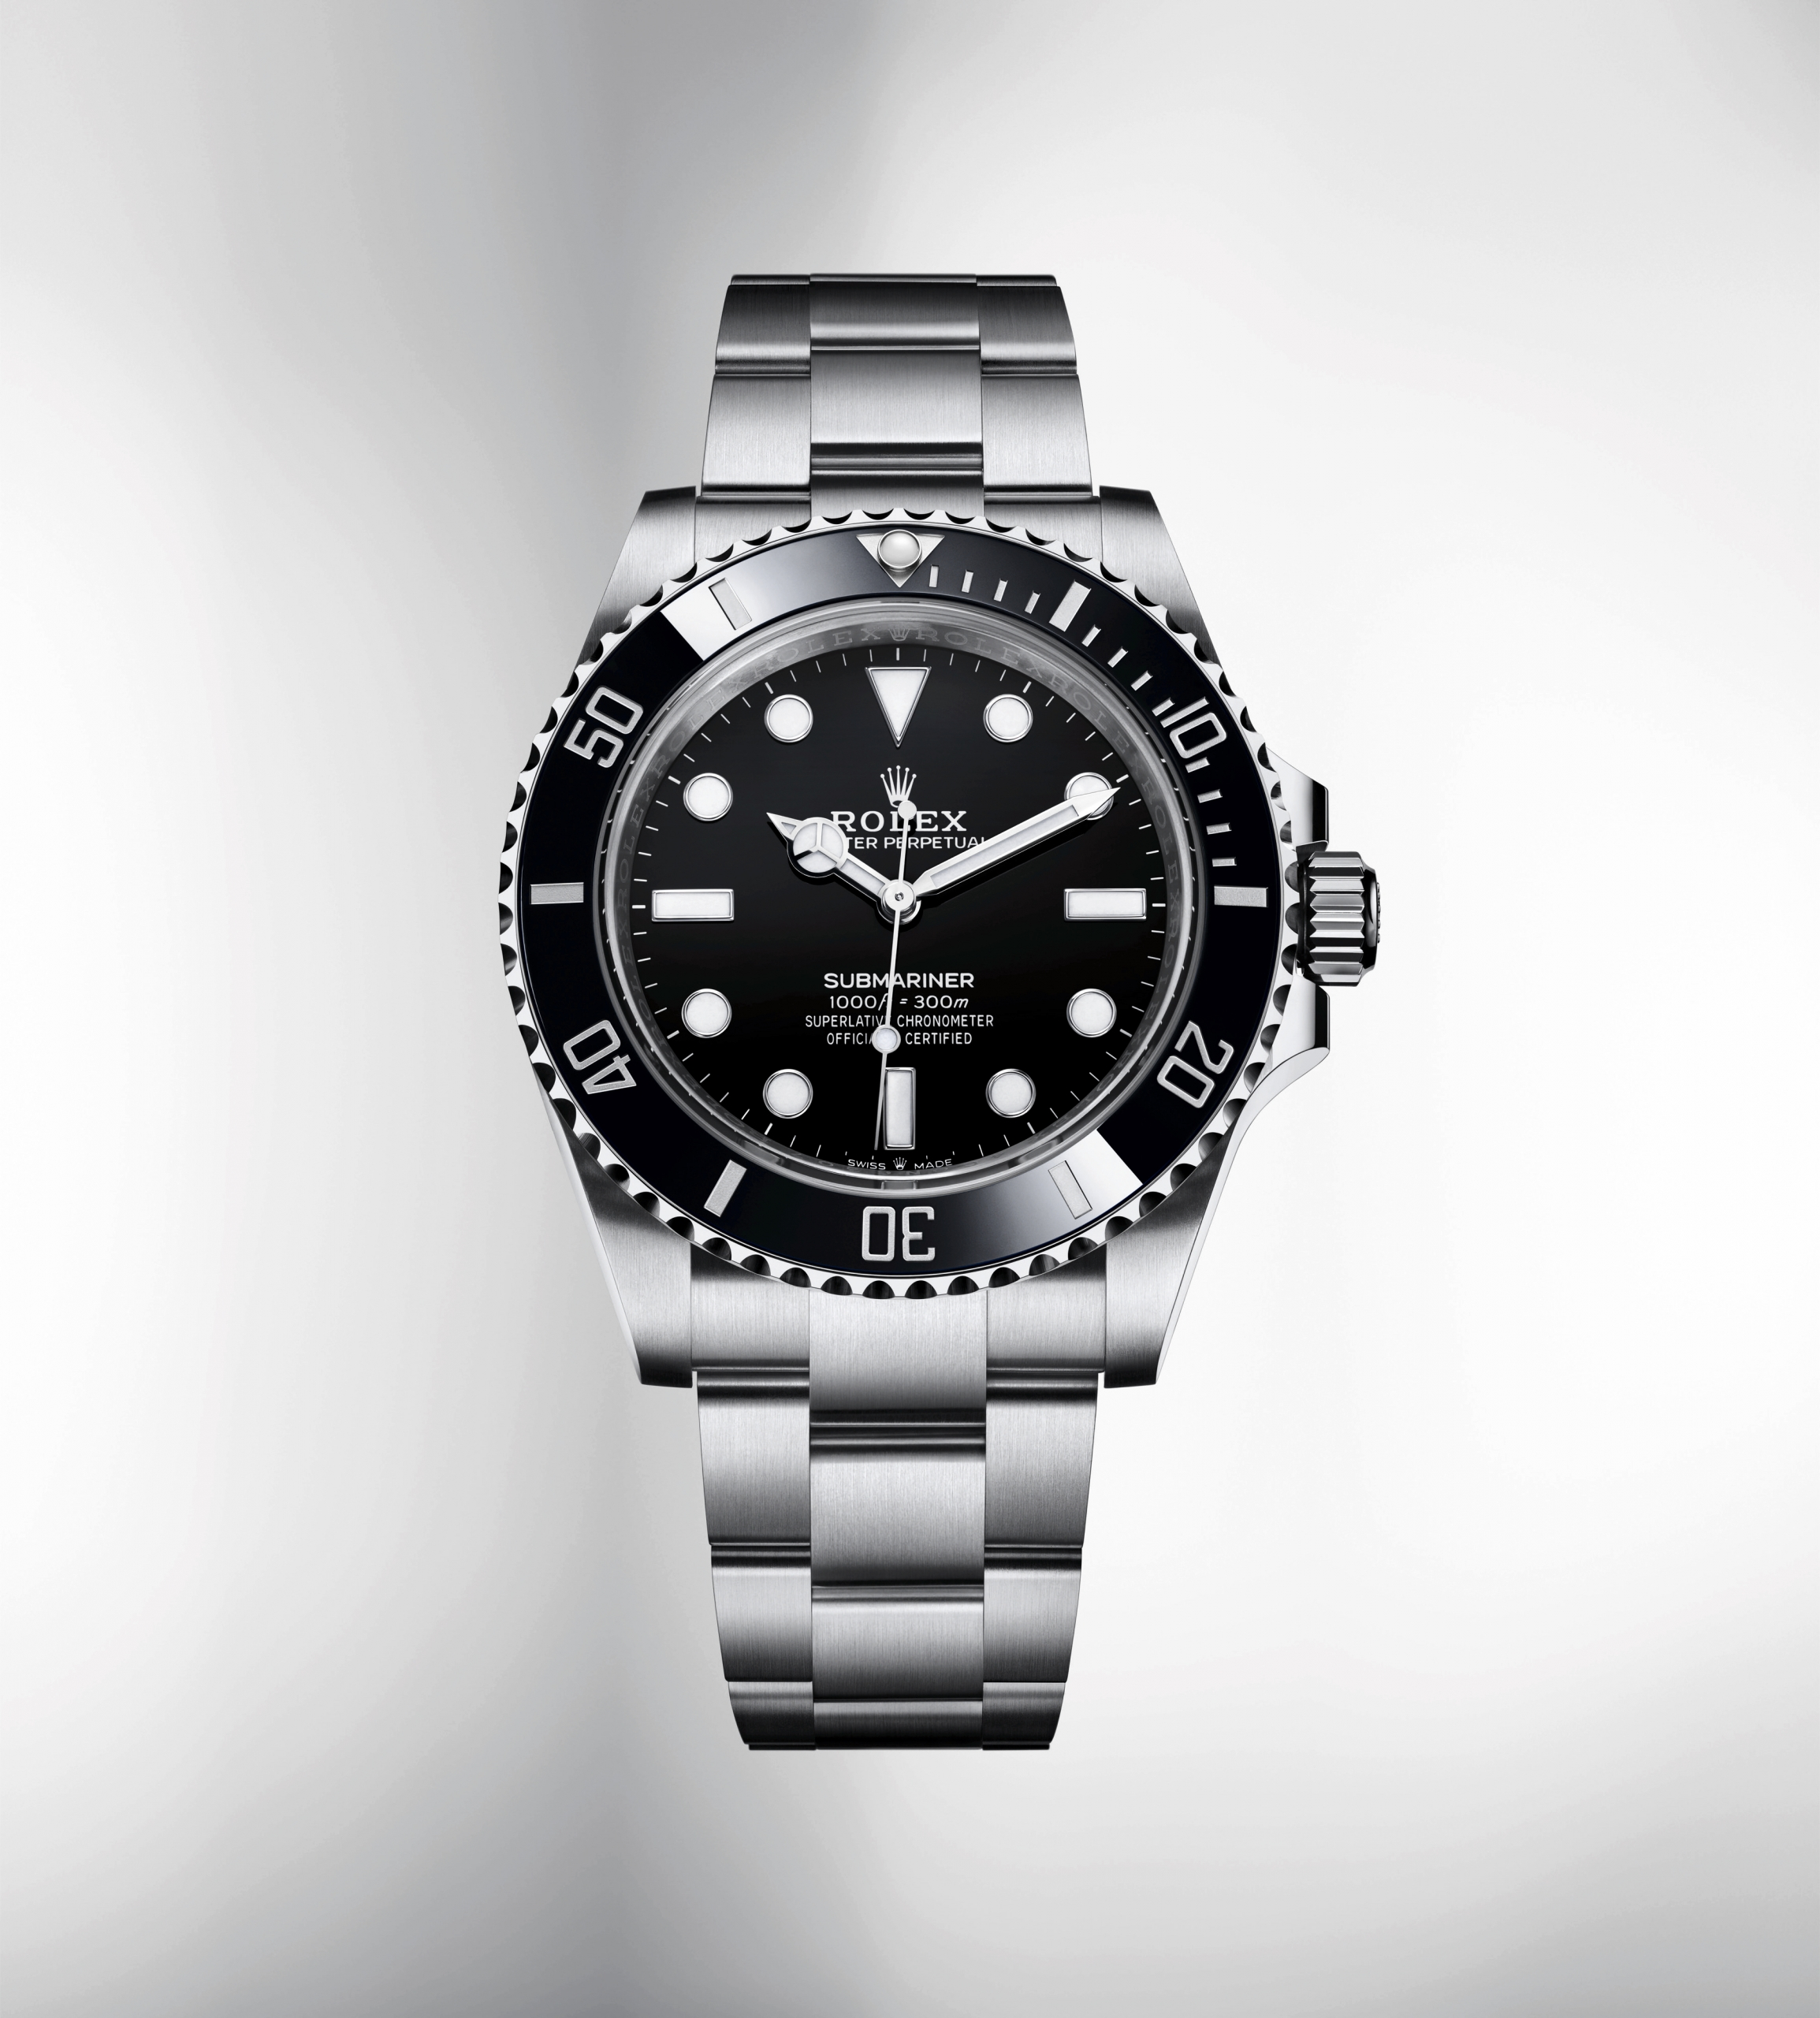 Rolex Oyster Perpetual Submariner Ref 124060